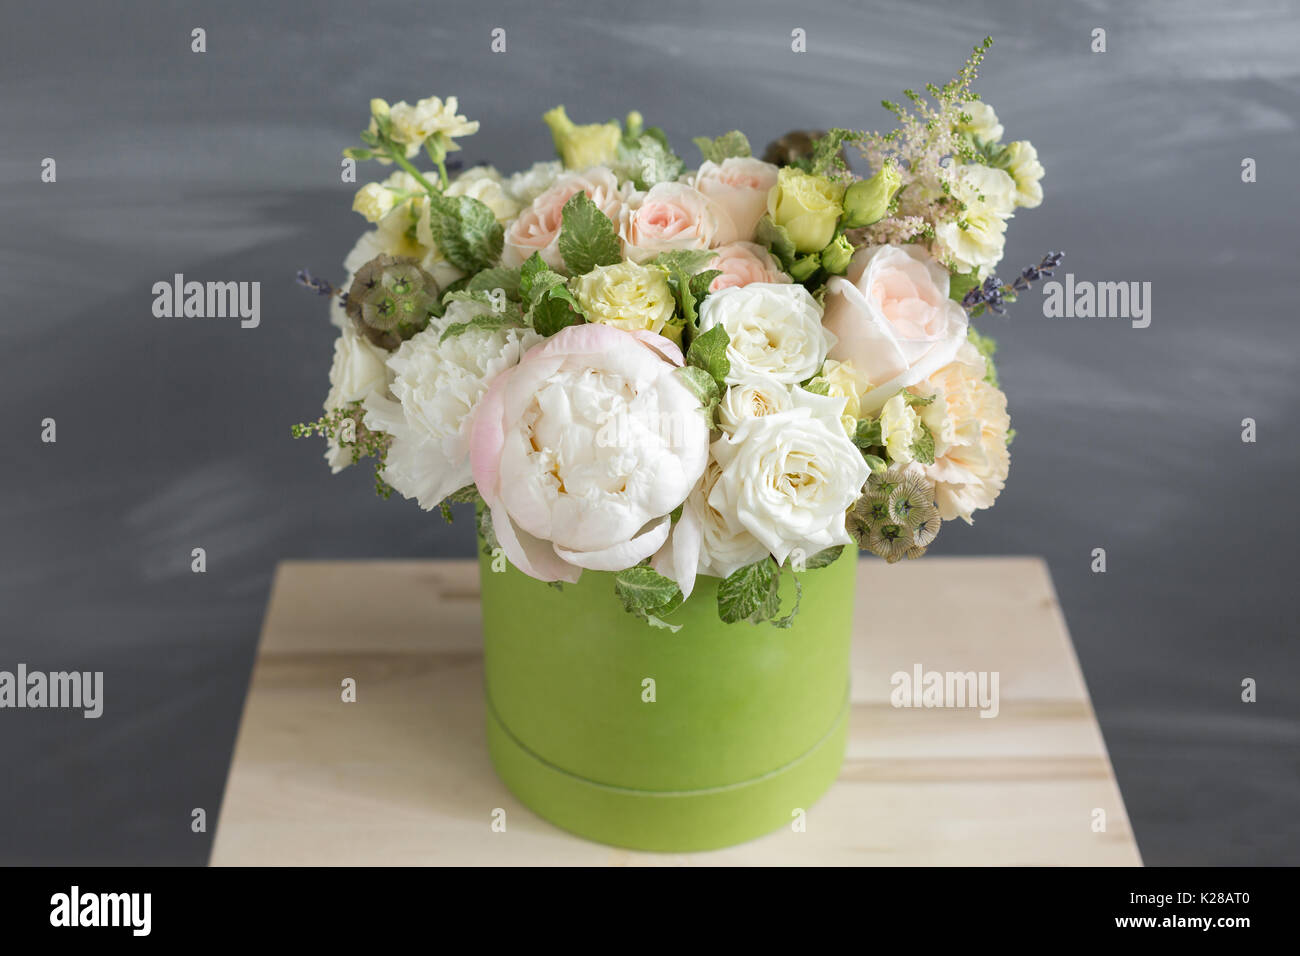 Beautiful tender bouquet of flowers in green box on gray background with space for text - Stock Image